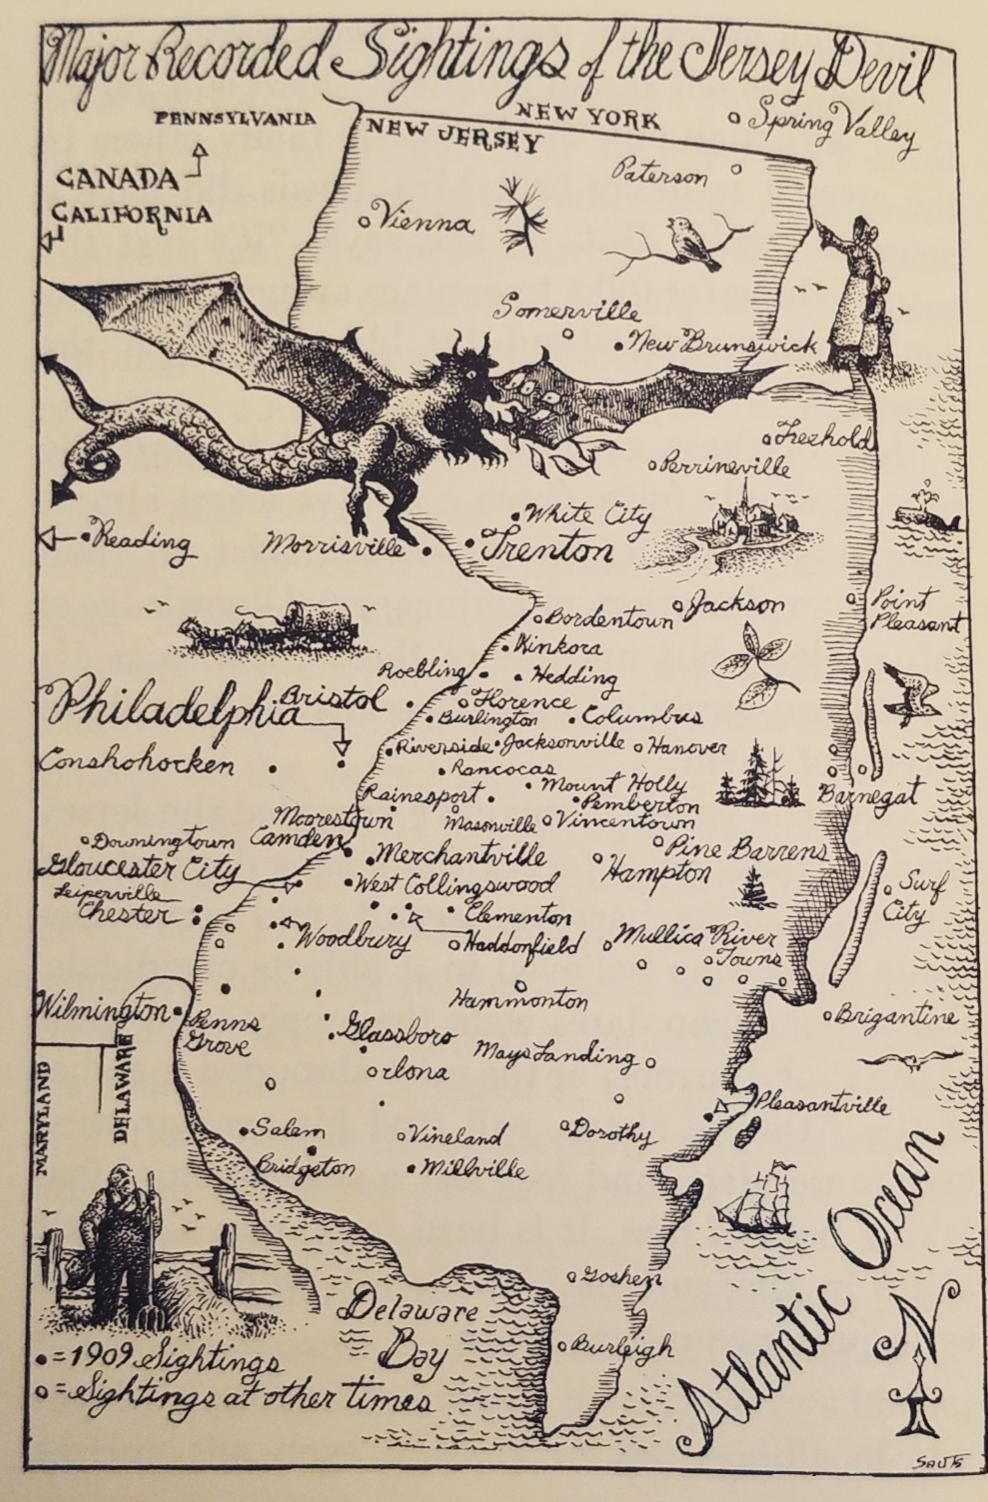 Major Recorded Sightings Of The Jersey Devil Maps Wonderful